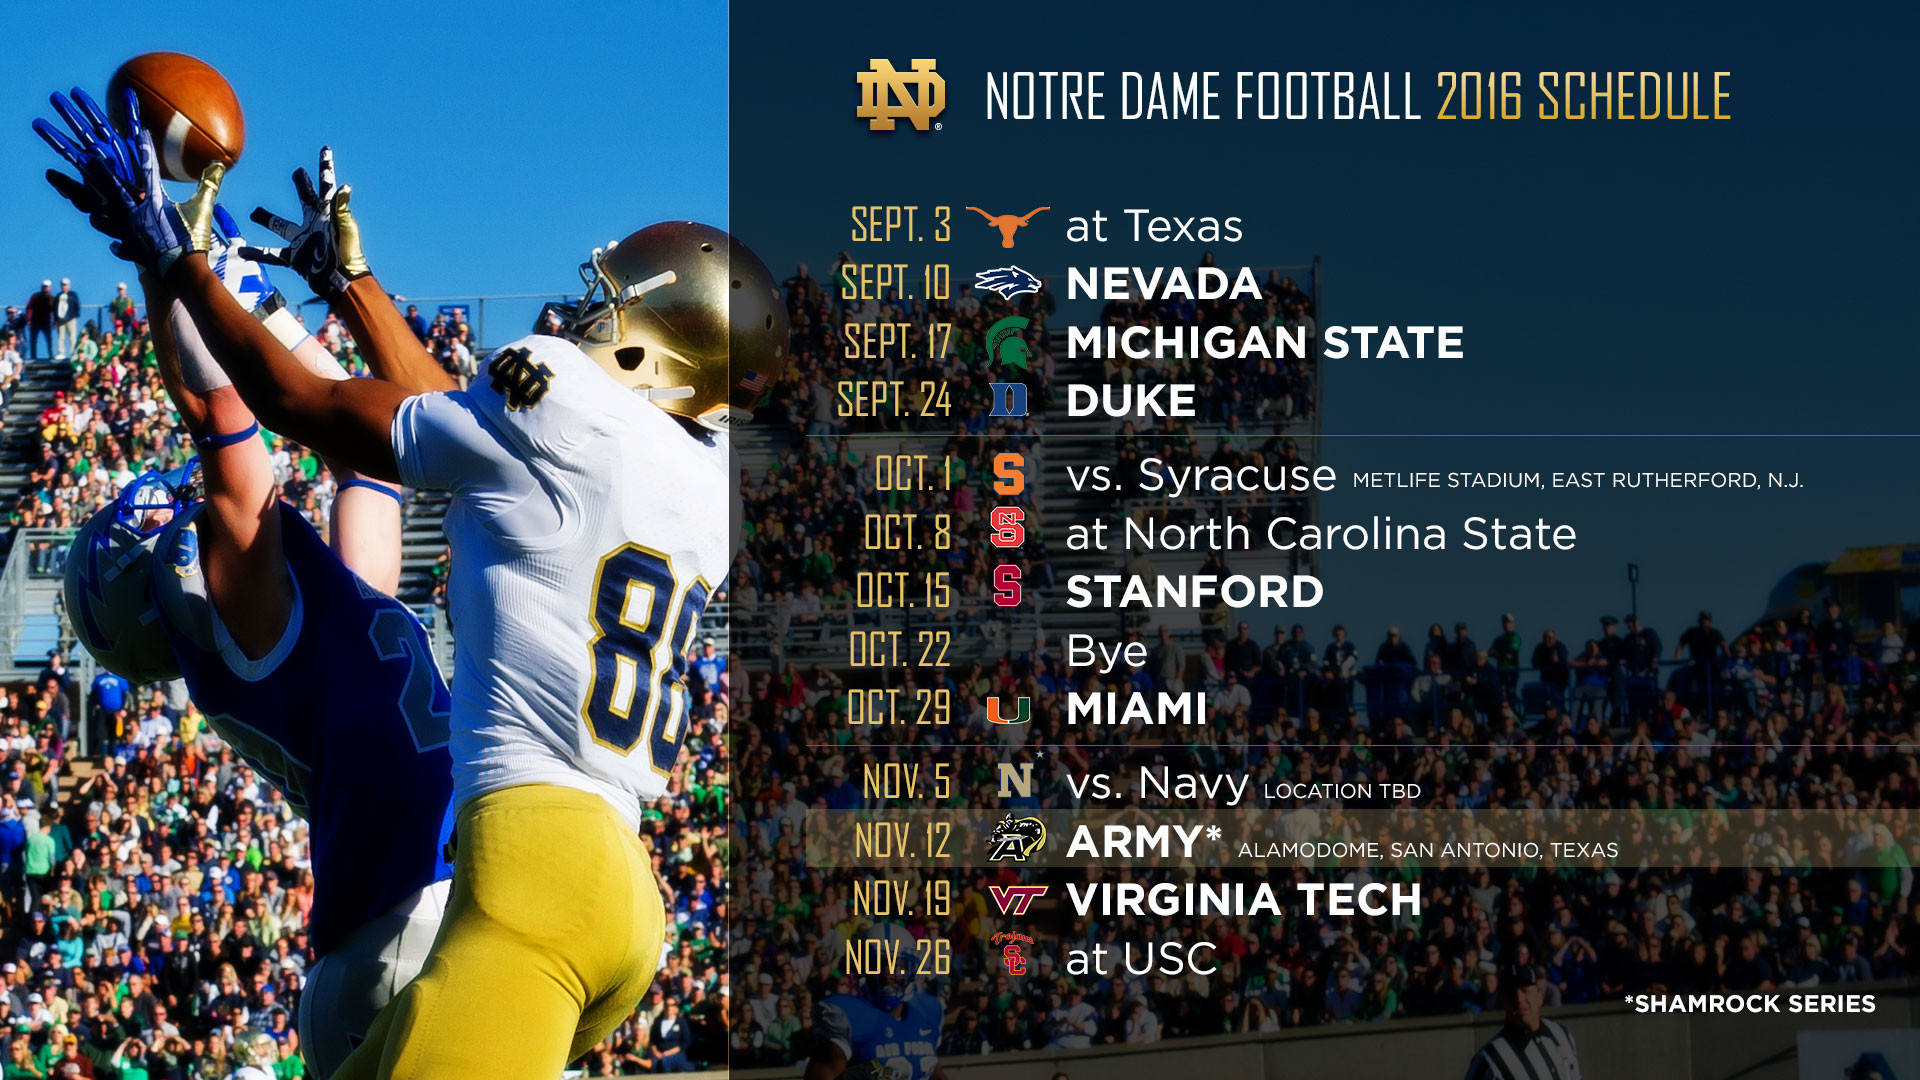 THE 2016 FOOTBALL SCHEDULE